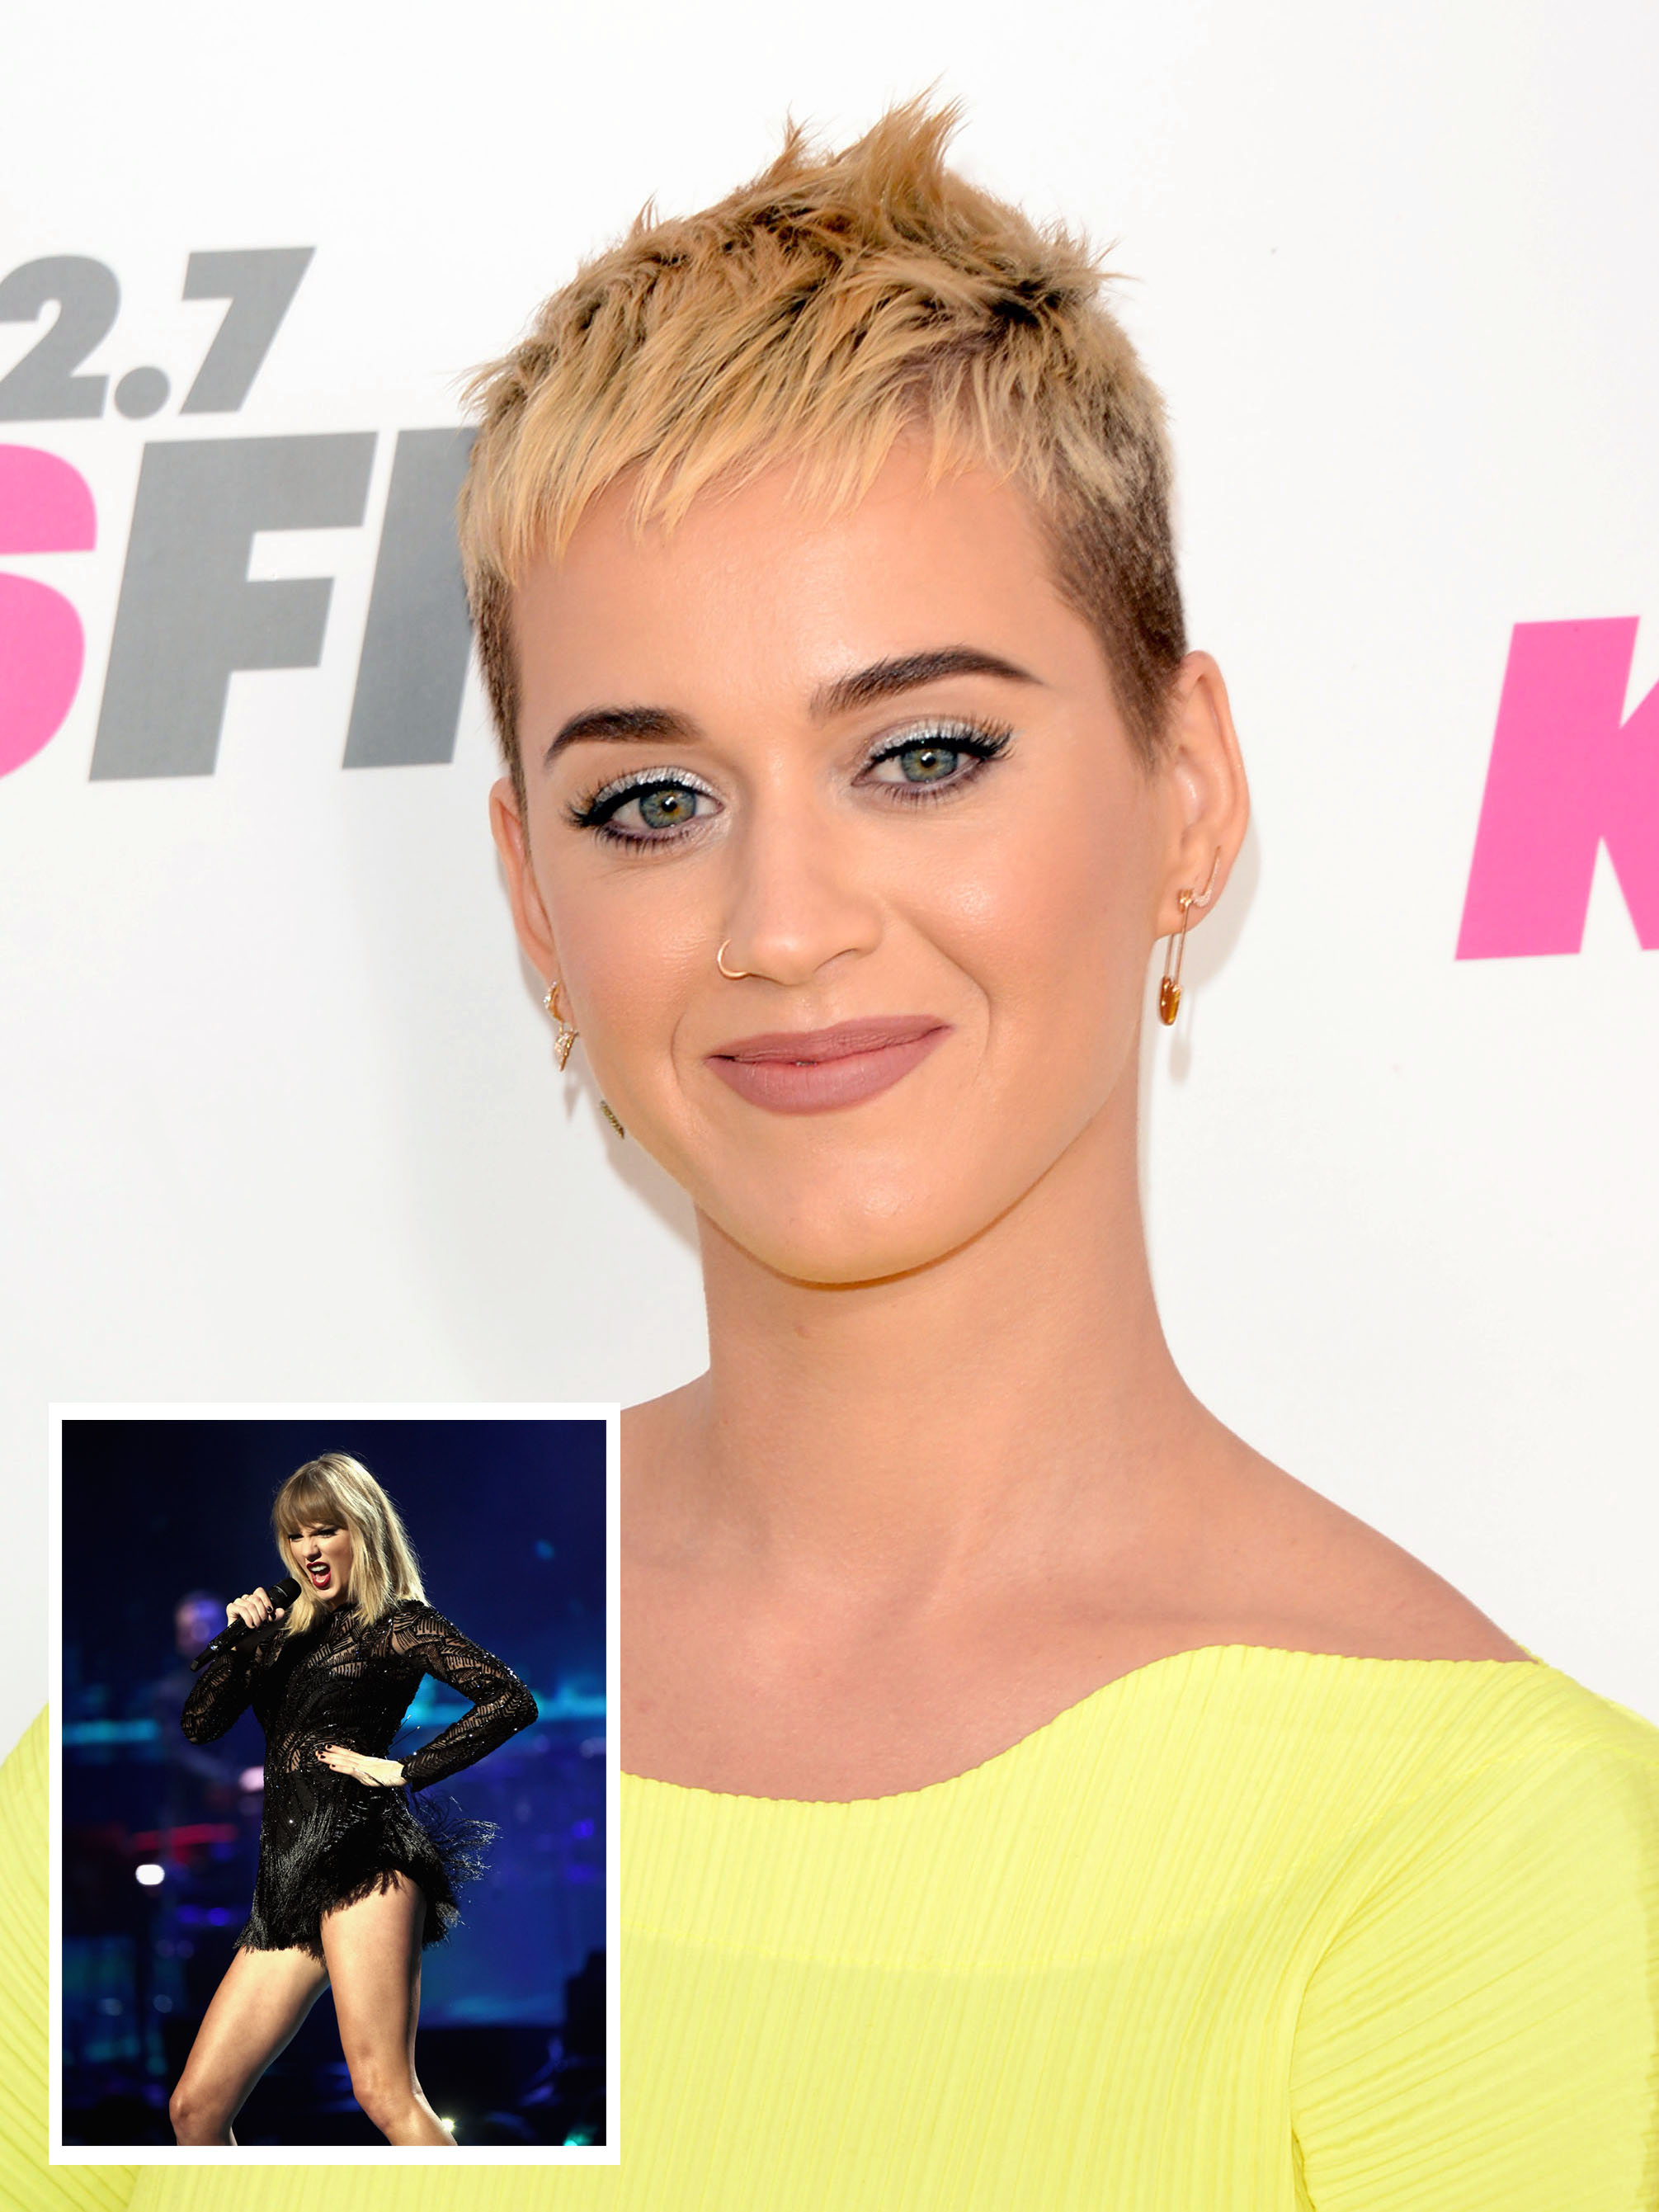 Is Katy Perry and Taylor Swift's epic feud FINALLY ending?